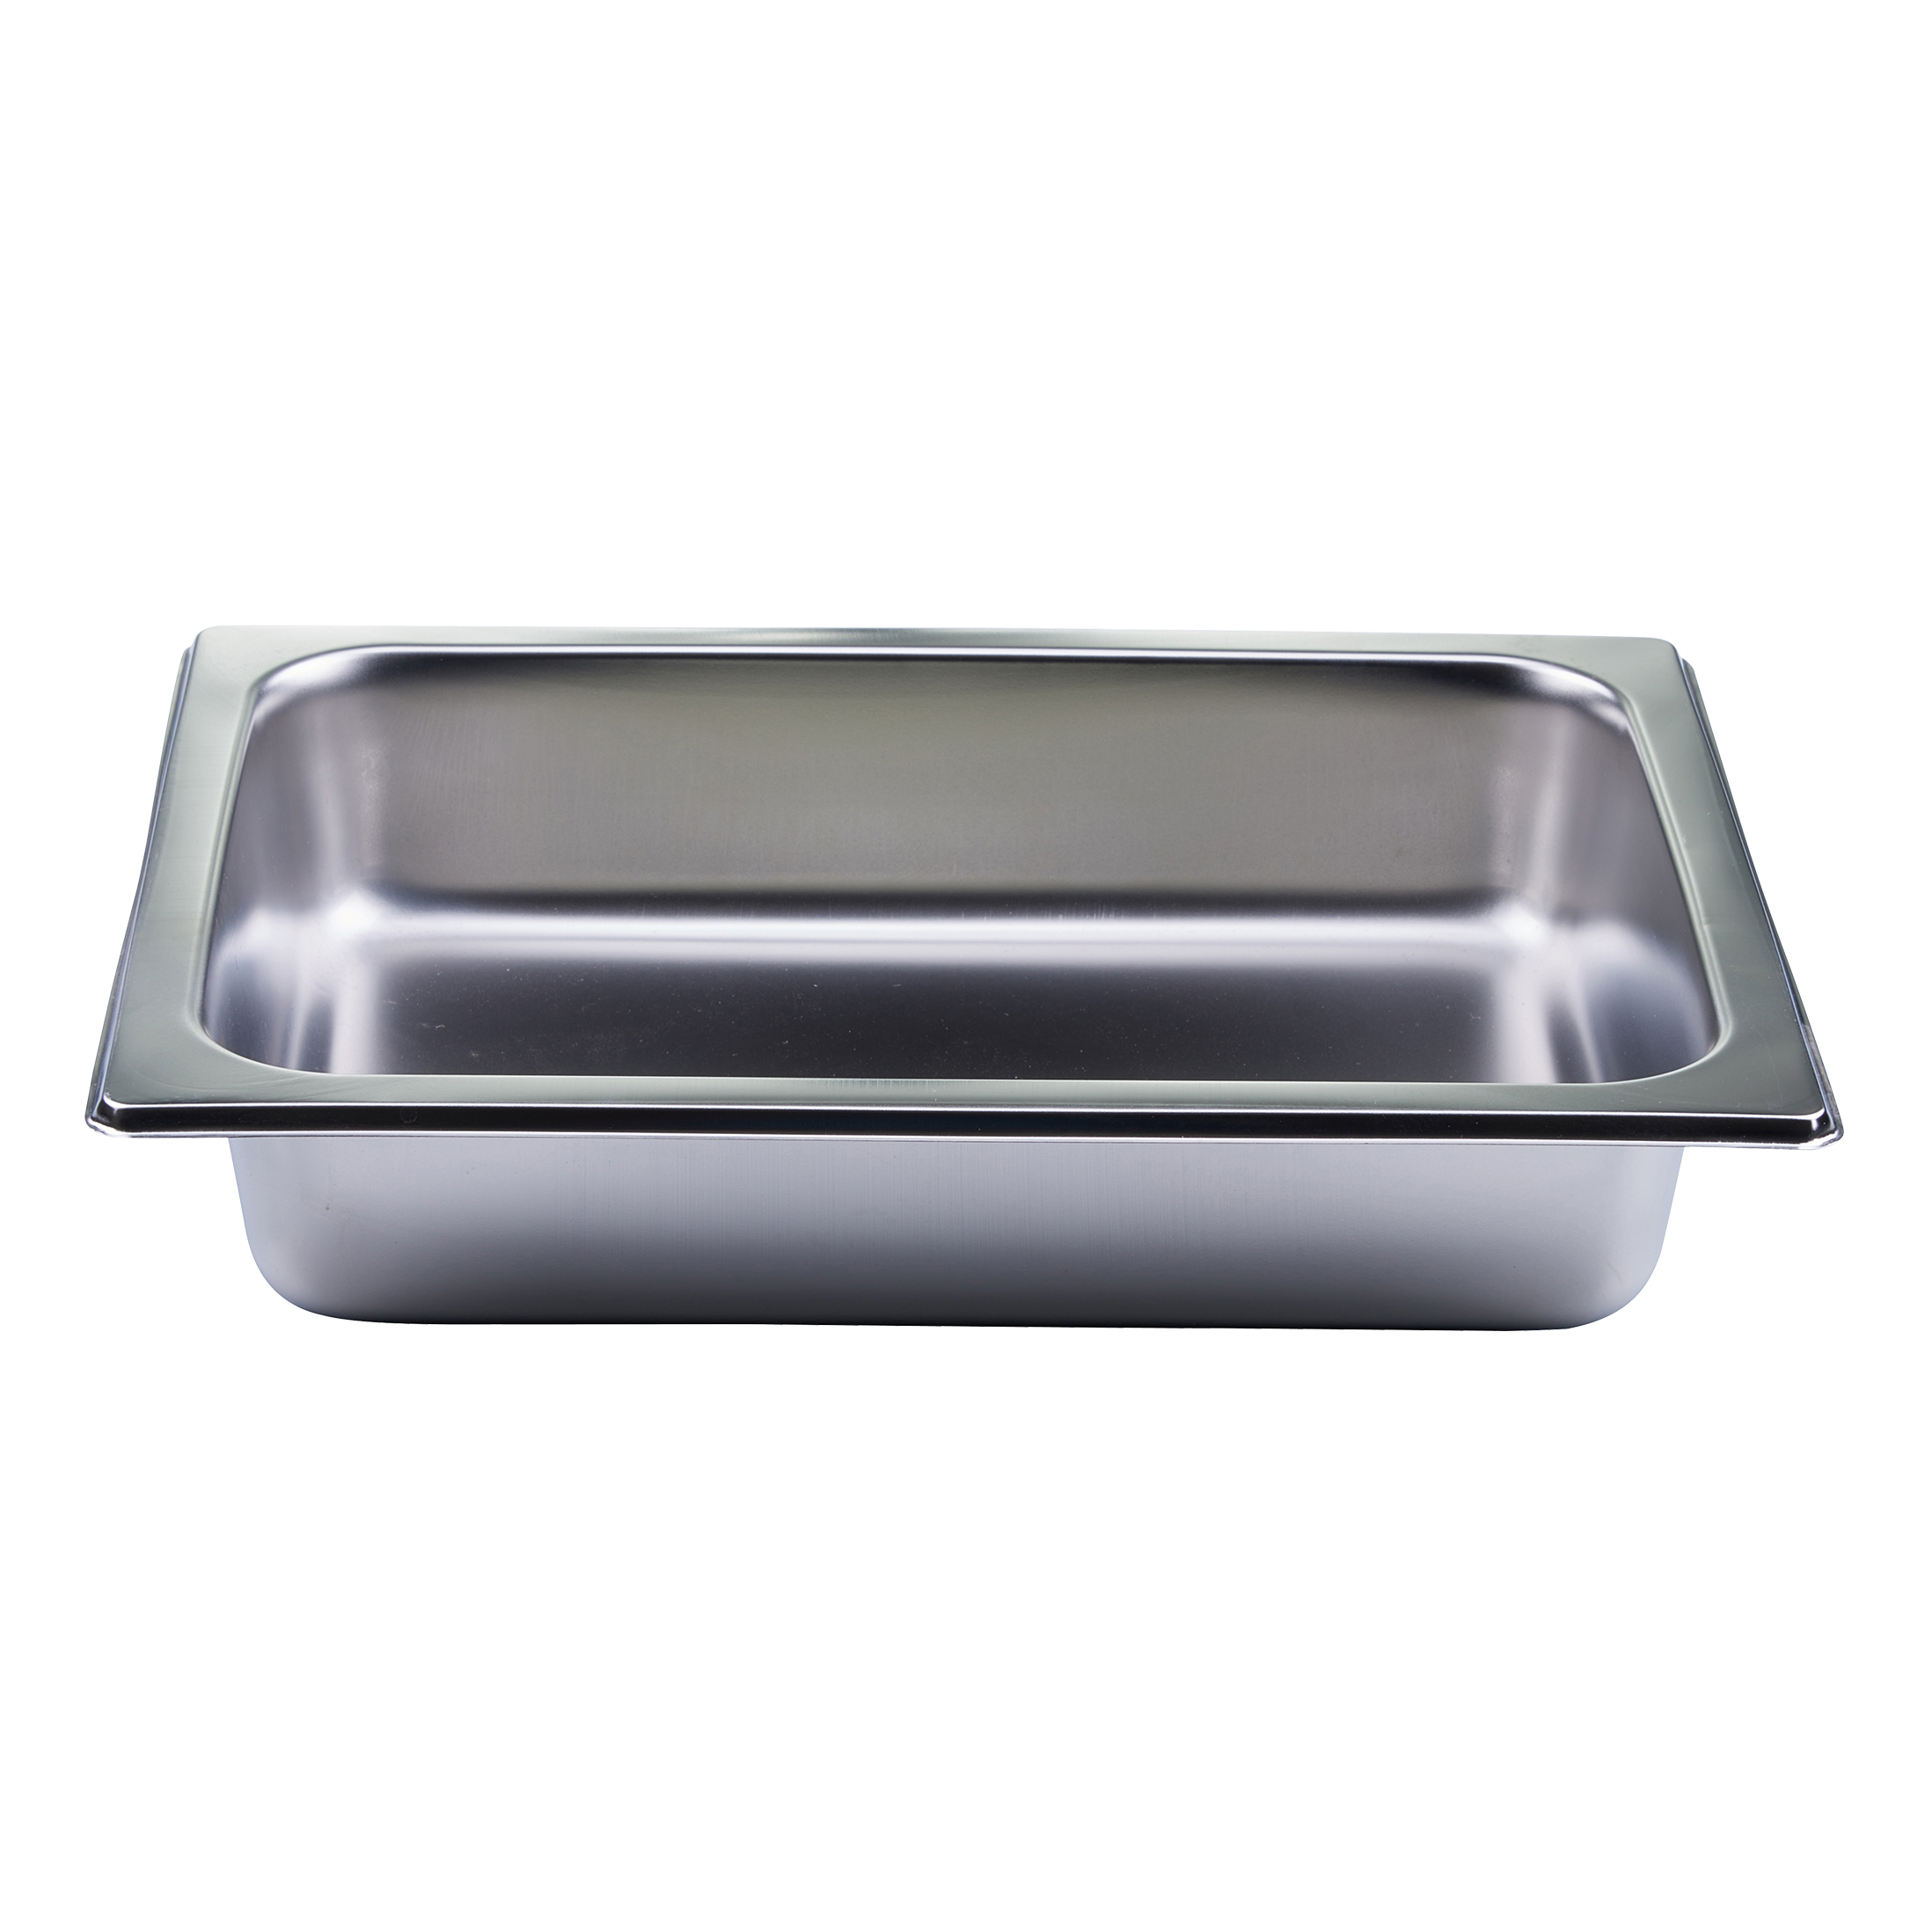 Winco 508-FP chafing dish pan